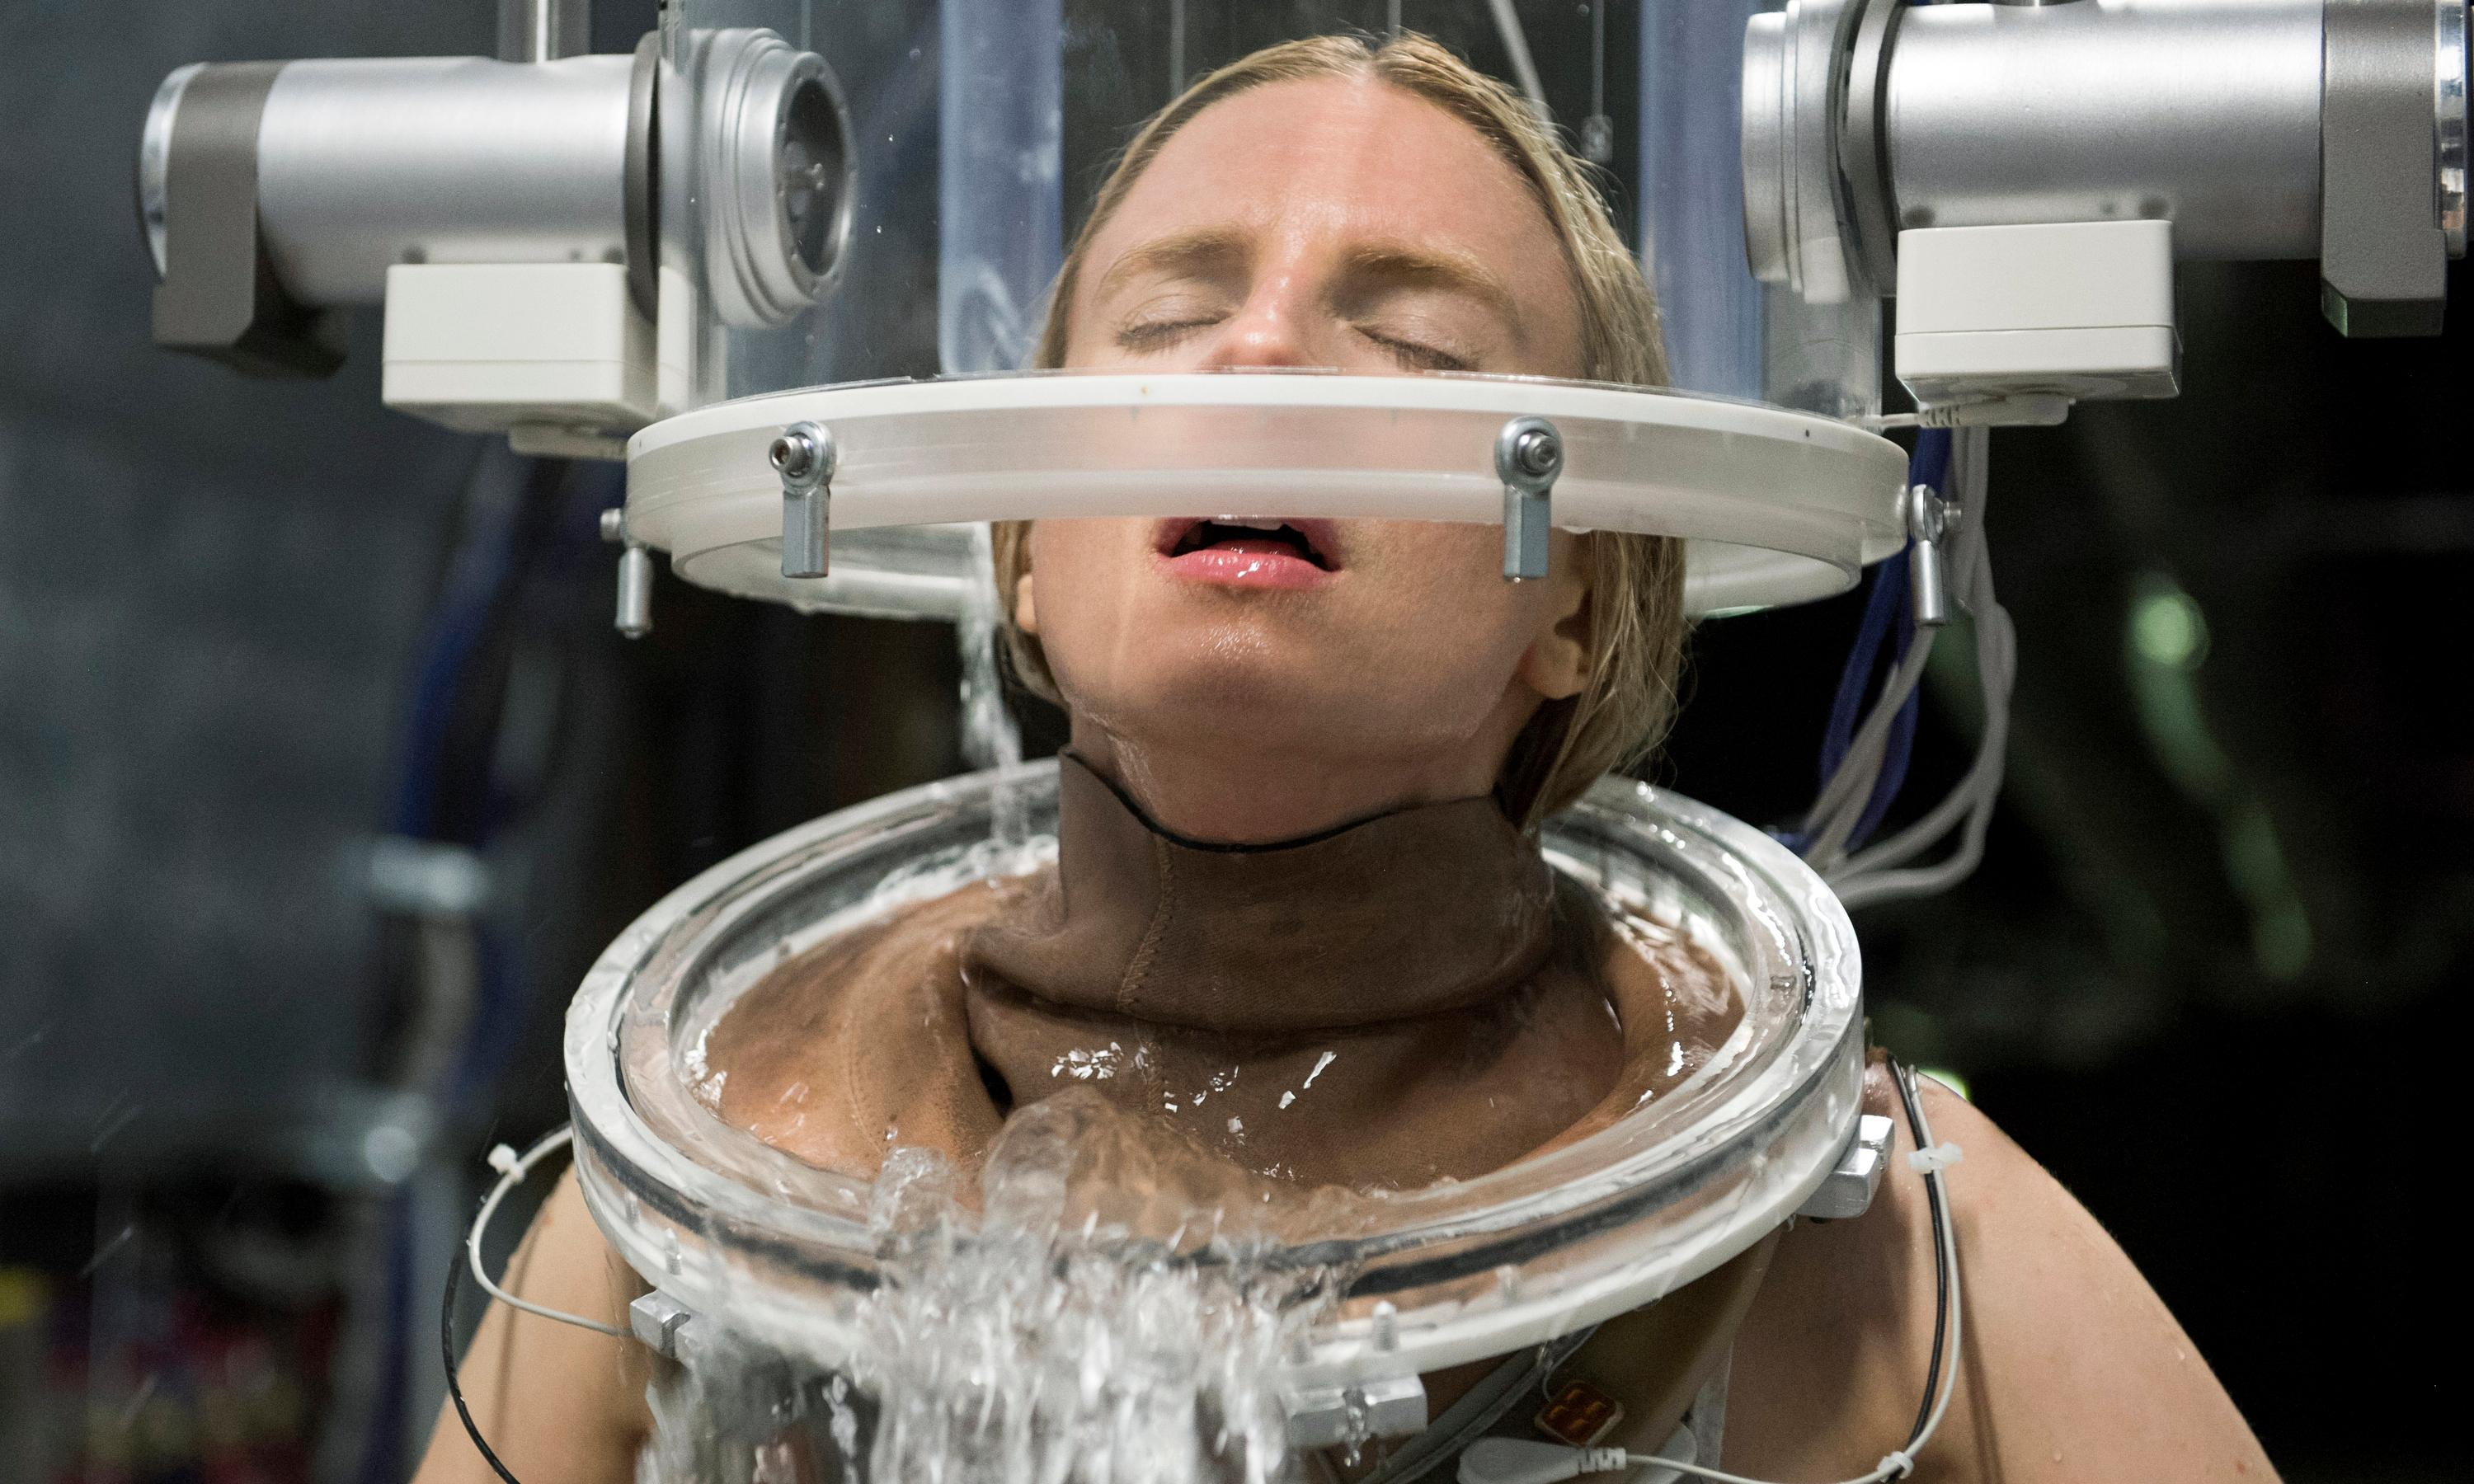 Farewell, telepathic octopus! Netflix has killed off The OA, and it's a travesty